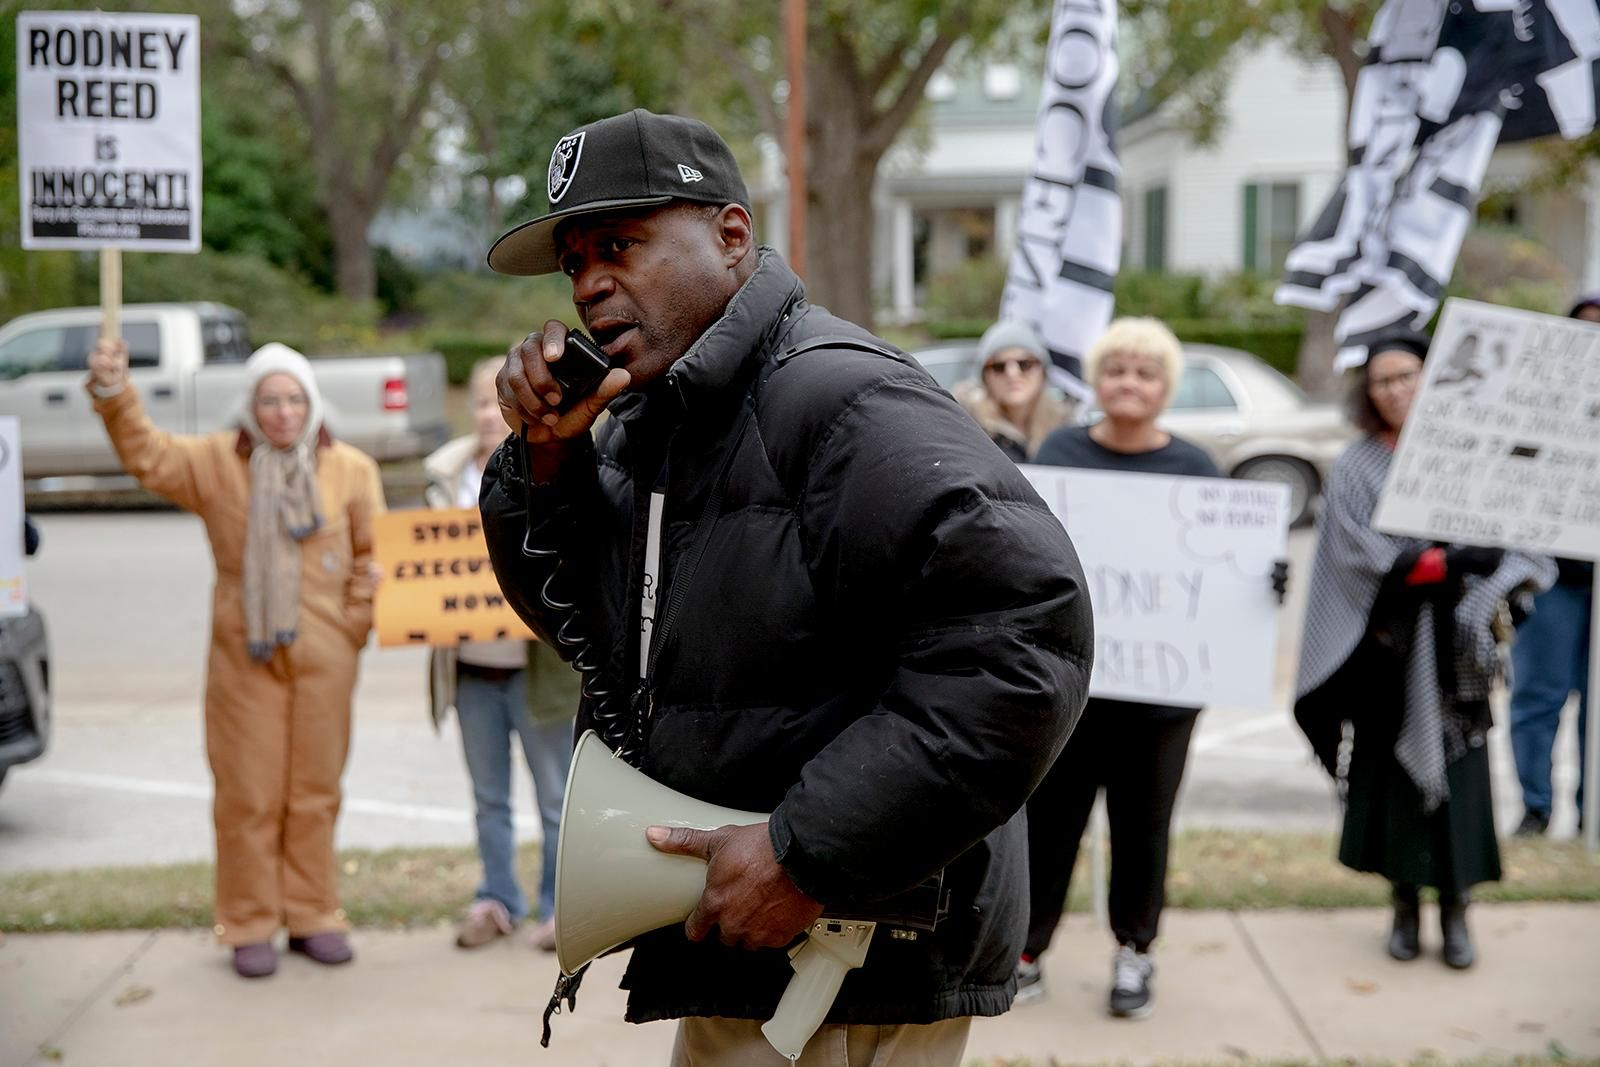 Rodrick Reed leads a chant during a protest against the execution of Rodney Reed on Wednesday, Nov. 13, 2019, in Bastrop, Texas. Reed is scheduled to be executed Nov. 20, but a growing number of politicians and celebrities have joined calls to further examine Reed's case before his execution proceeds. (Nick Wagner/Austin American-Statesman via AP)